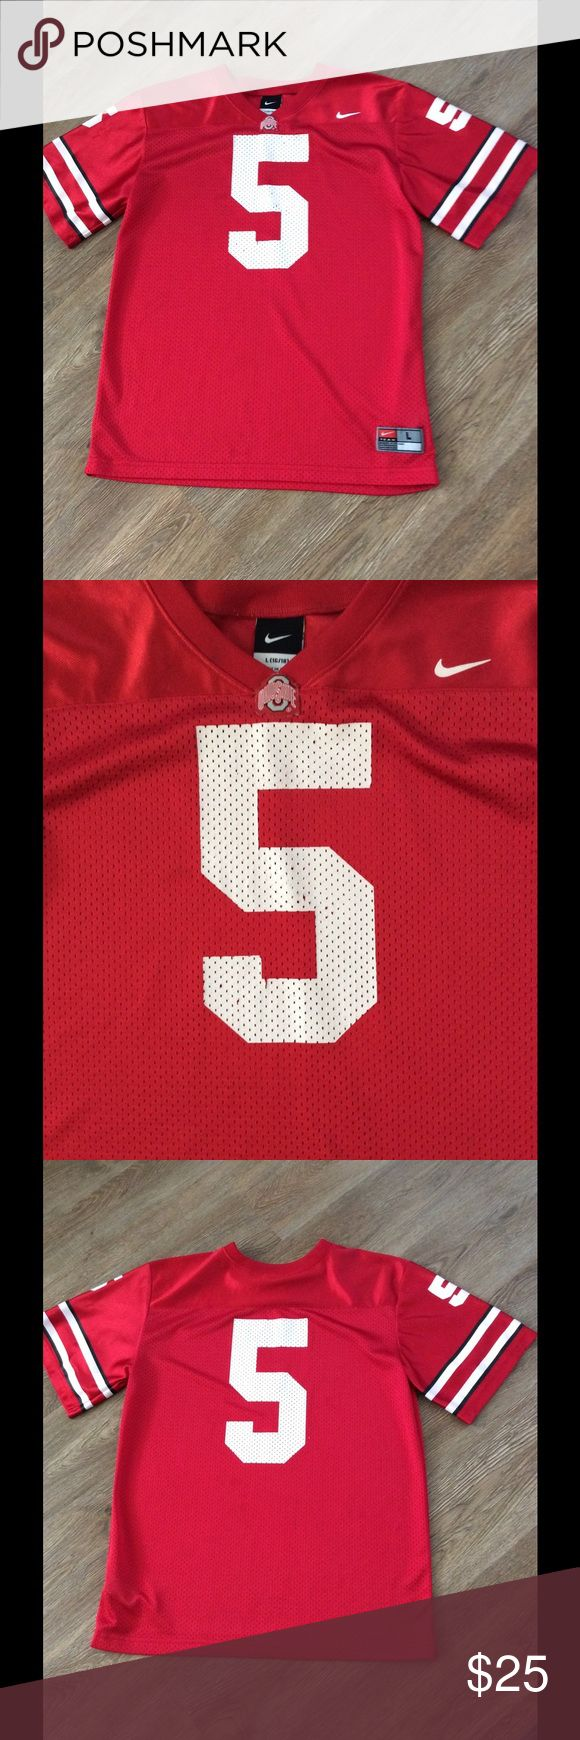 Ohio State football jersey This is a youth Ohio State football jersey with #5. It has the Ohio St logo on the neck of jersey .Item is in great condition Nike Shirts & Tops